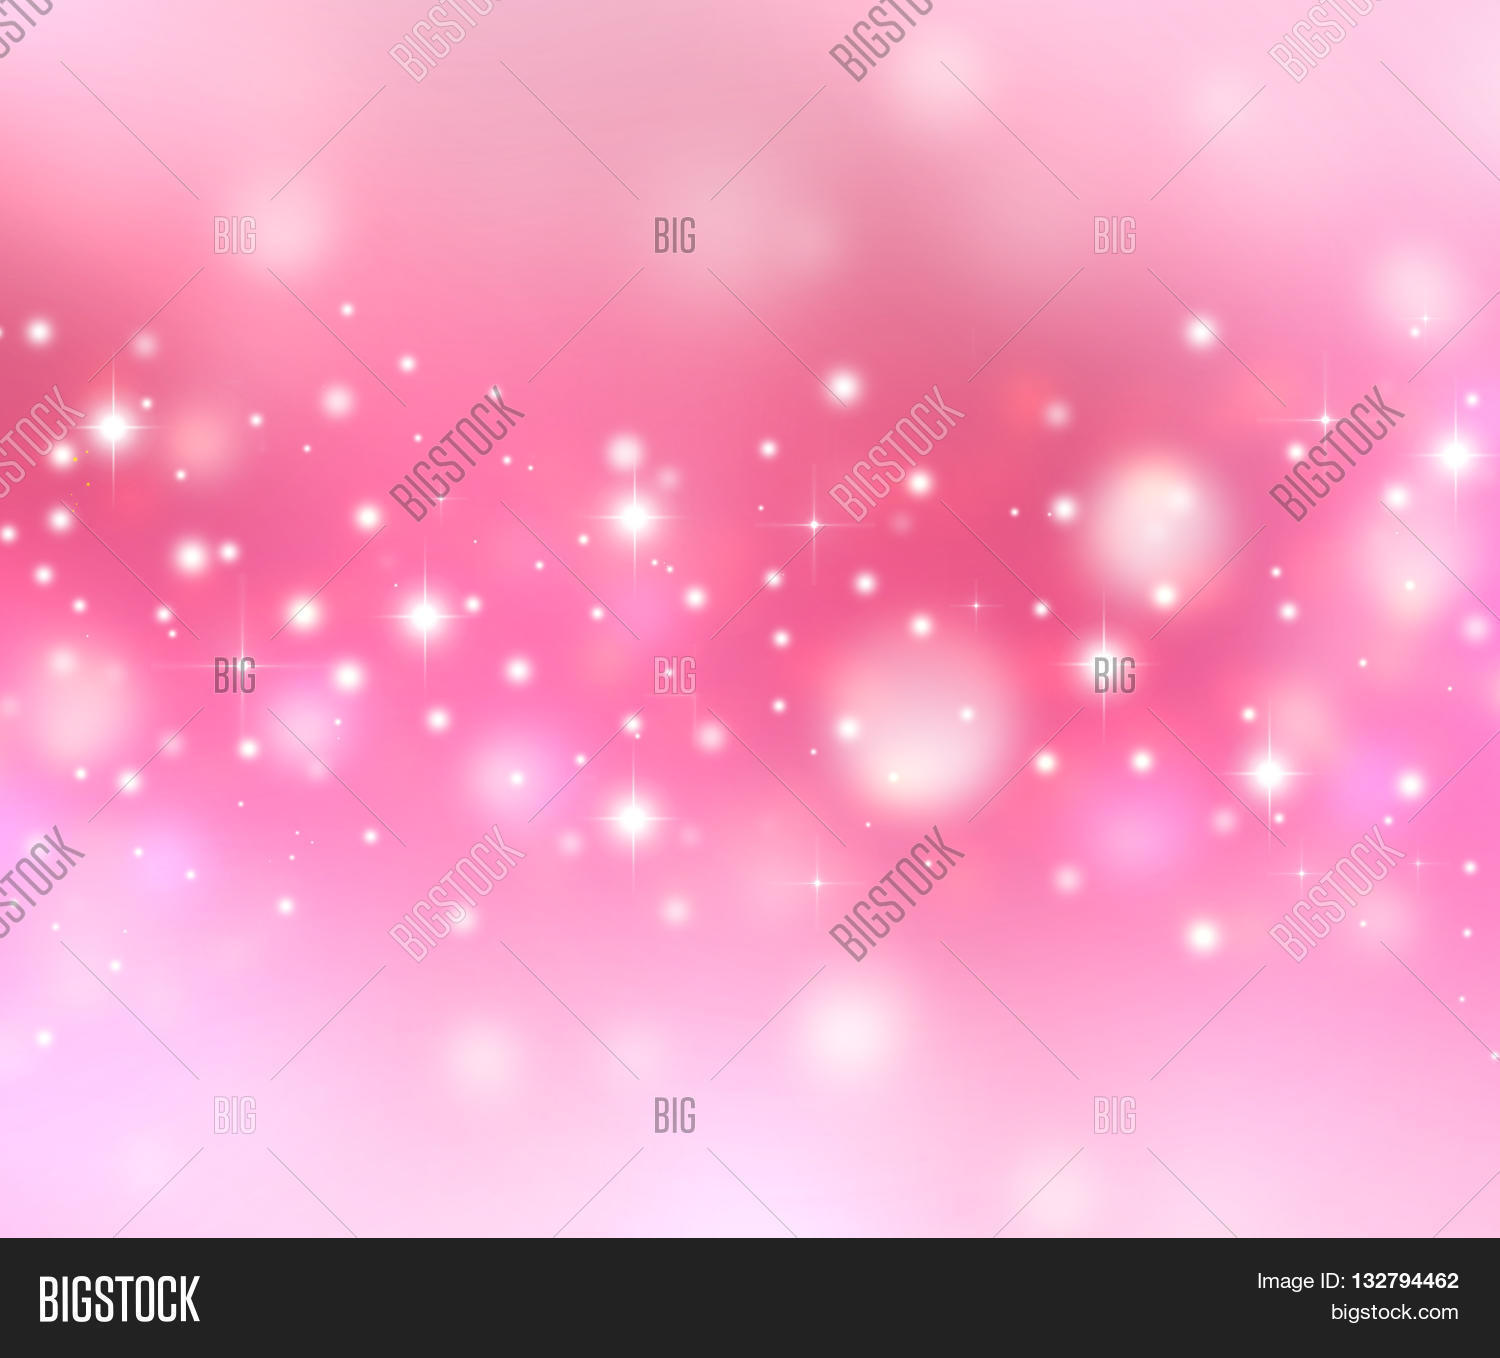 Magic Christmas Lights Sparkling Snow Background With Stardust And Shining Stars Pink White Love Holiday